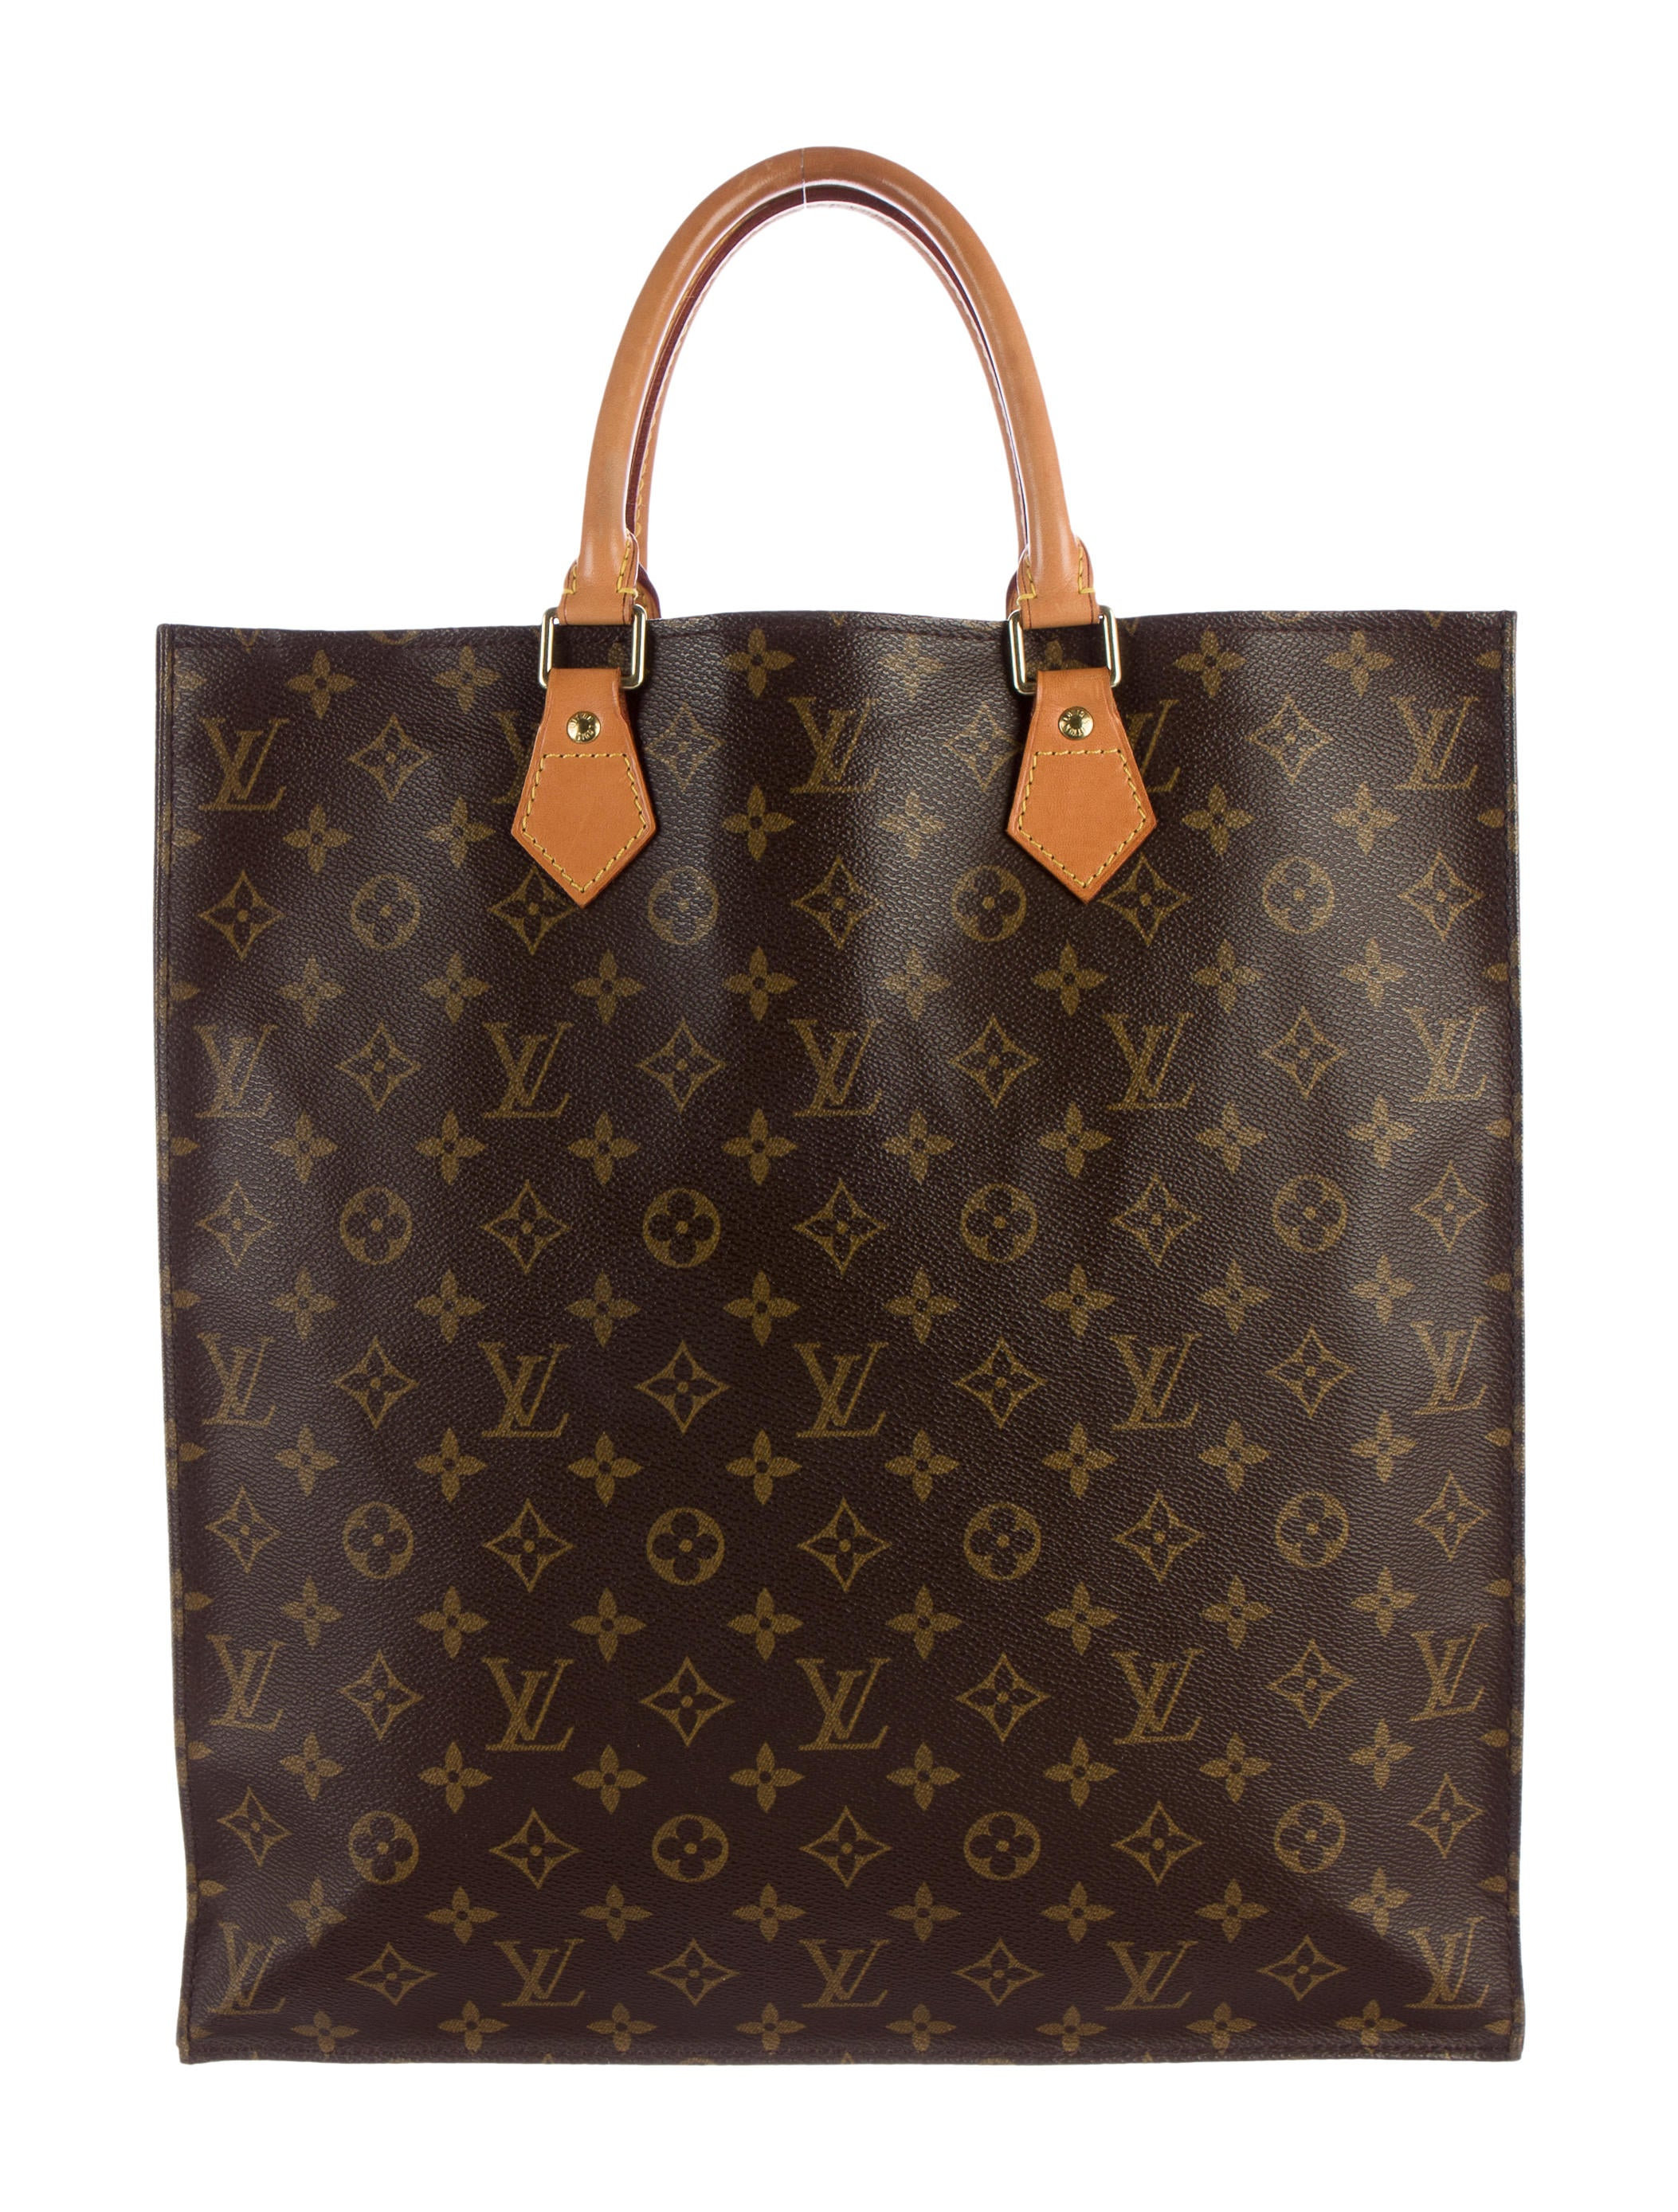 Louis vuitton monogram sac plat handbags lou106578 for Louis vuitton monogram miroir sac plat